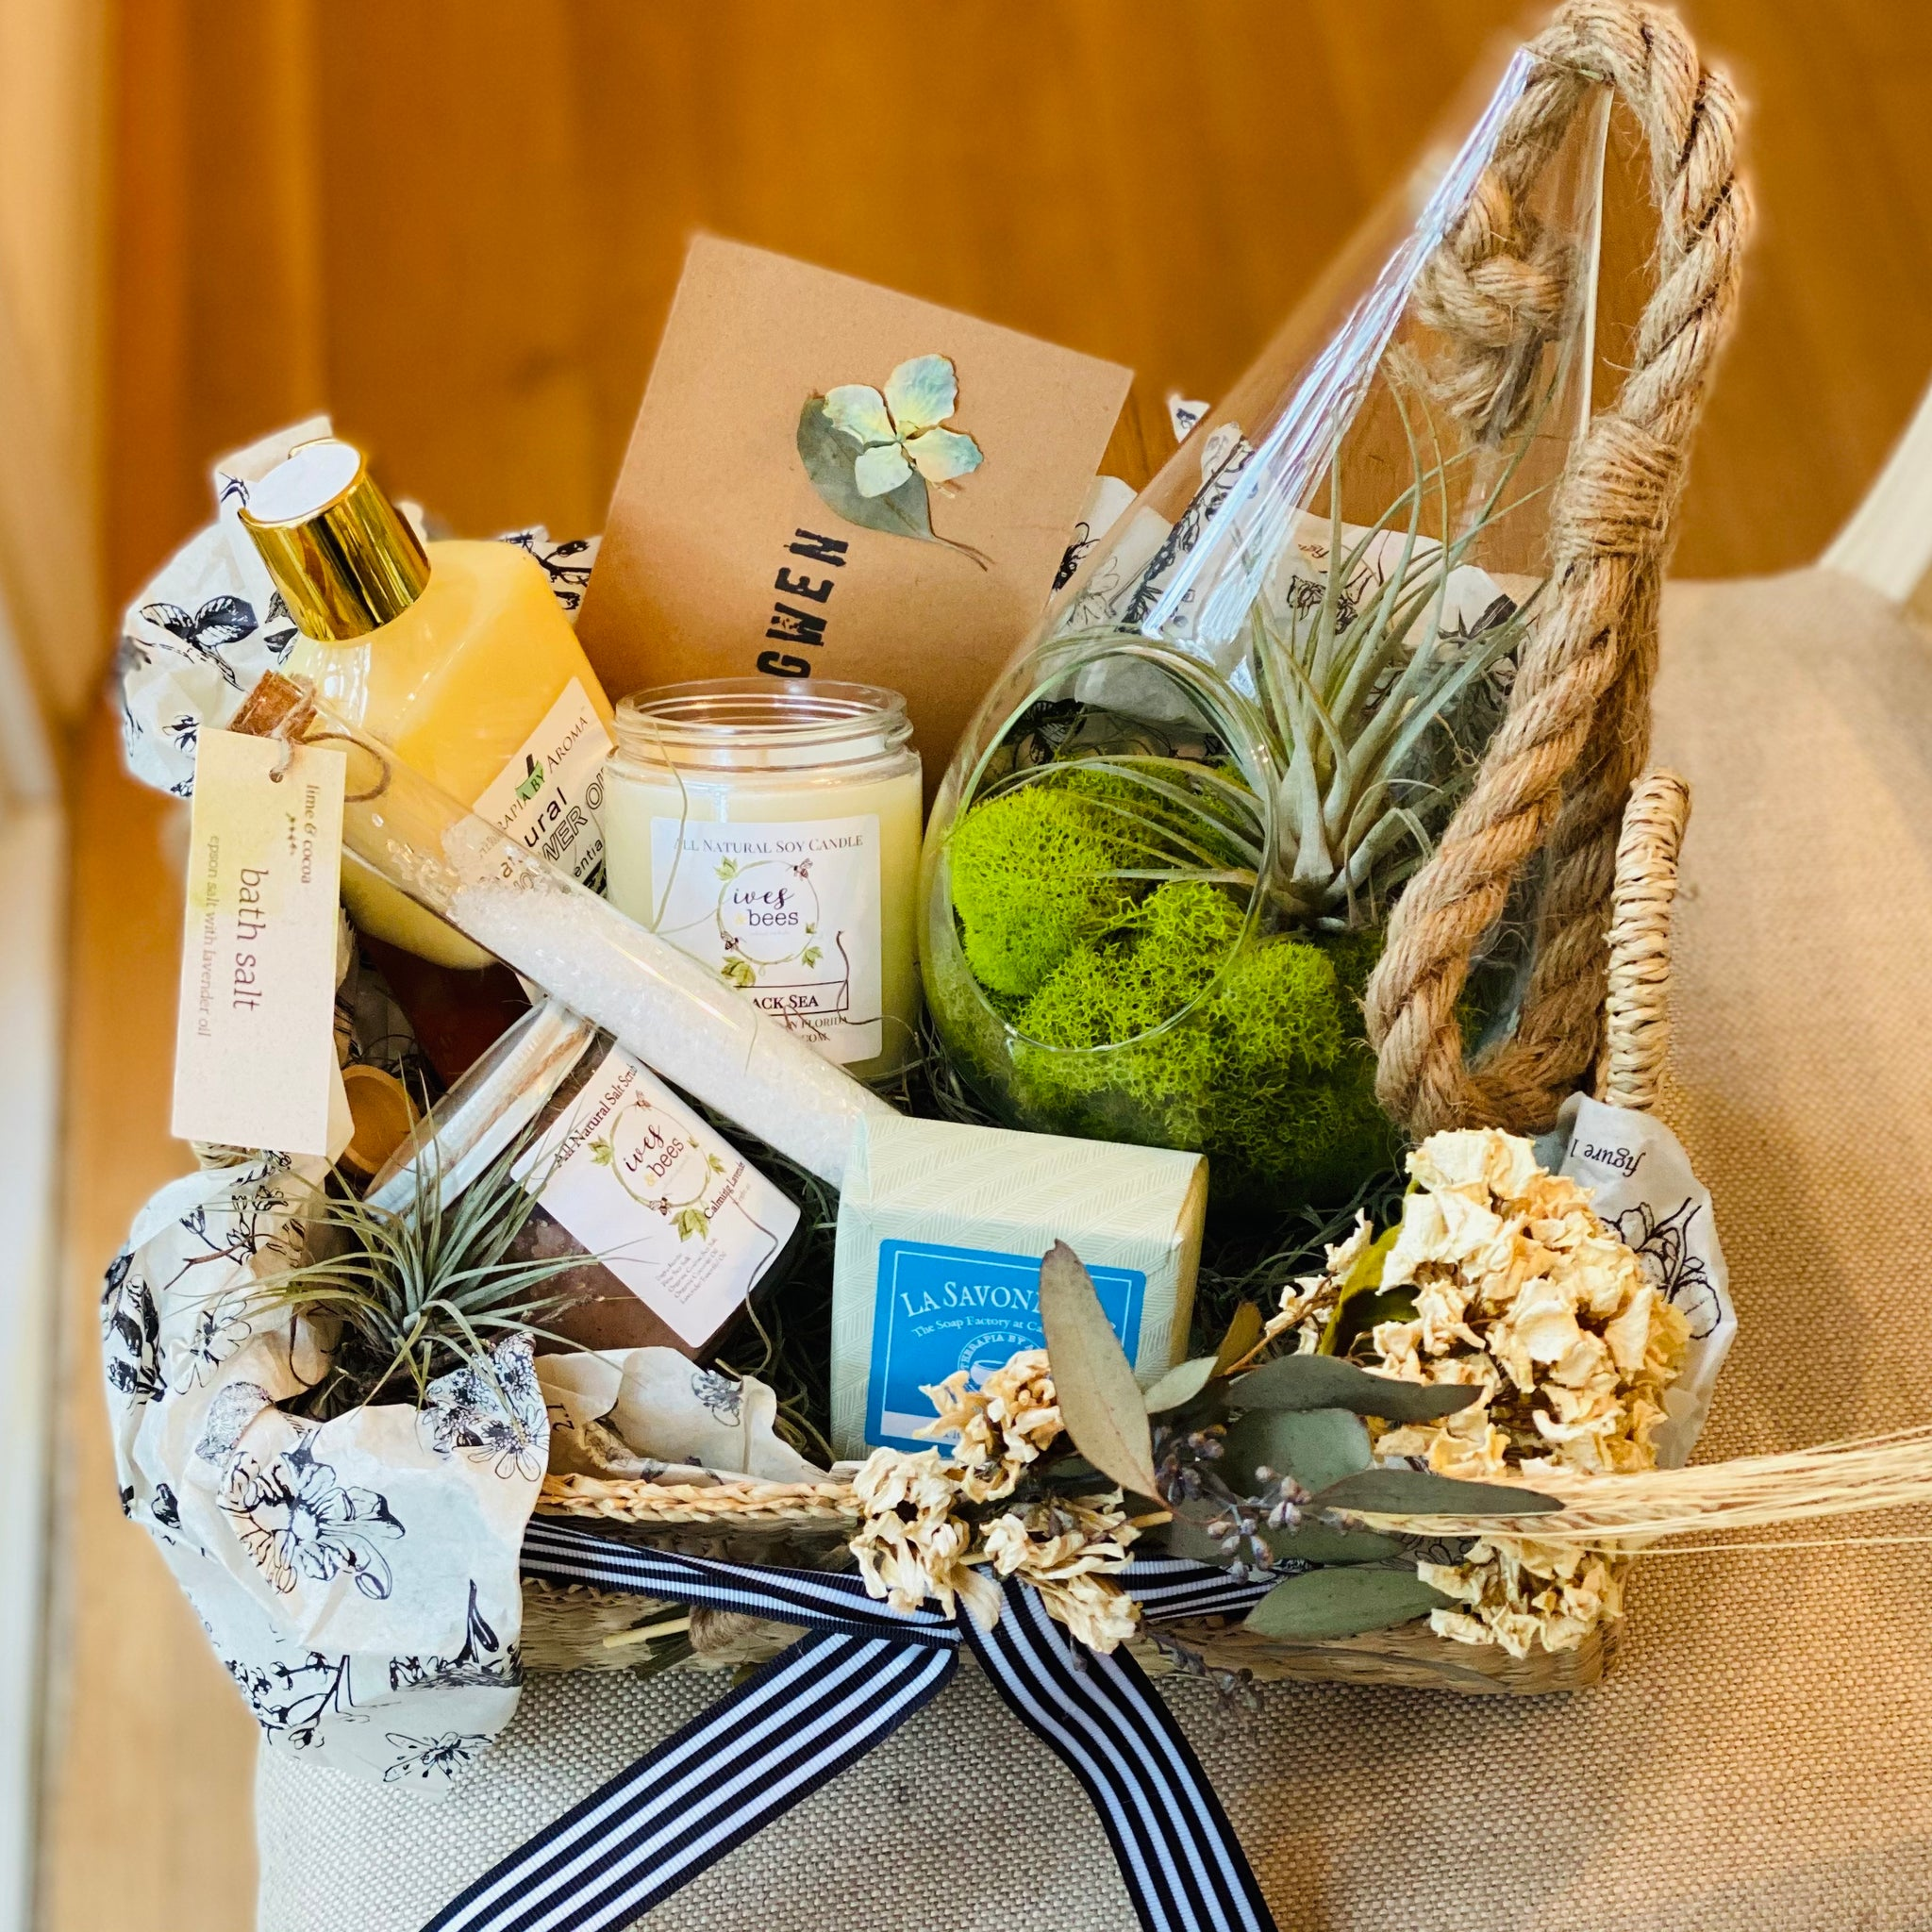 basket on a chair with air plant terrarium, shower oil, soap, candle, bath scrub and test tube with bath salt.  Card with Gwen stamped on it.